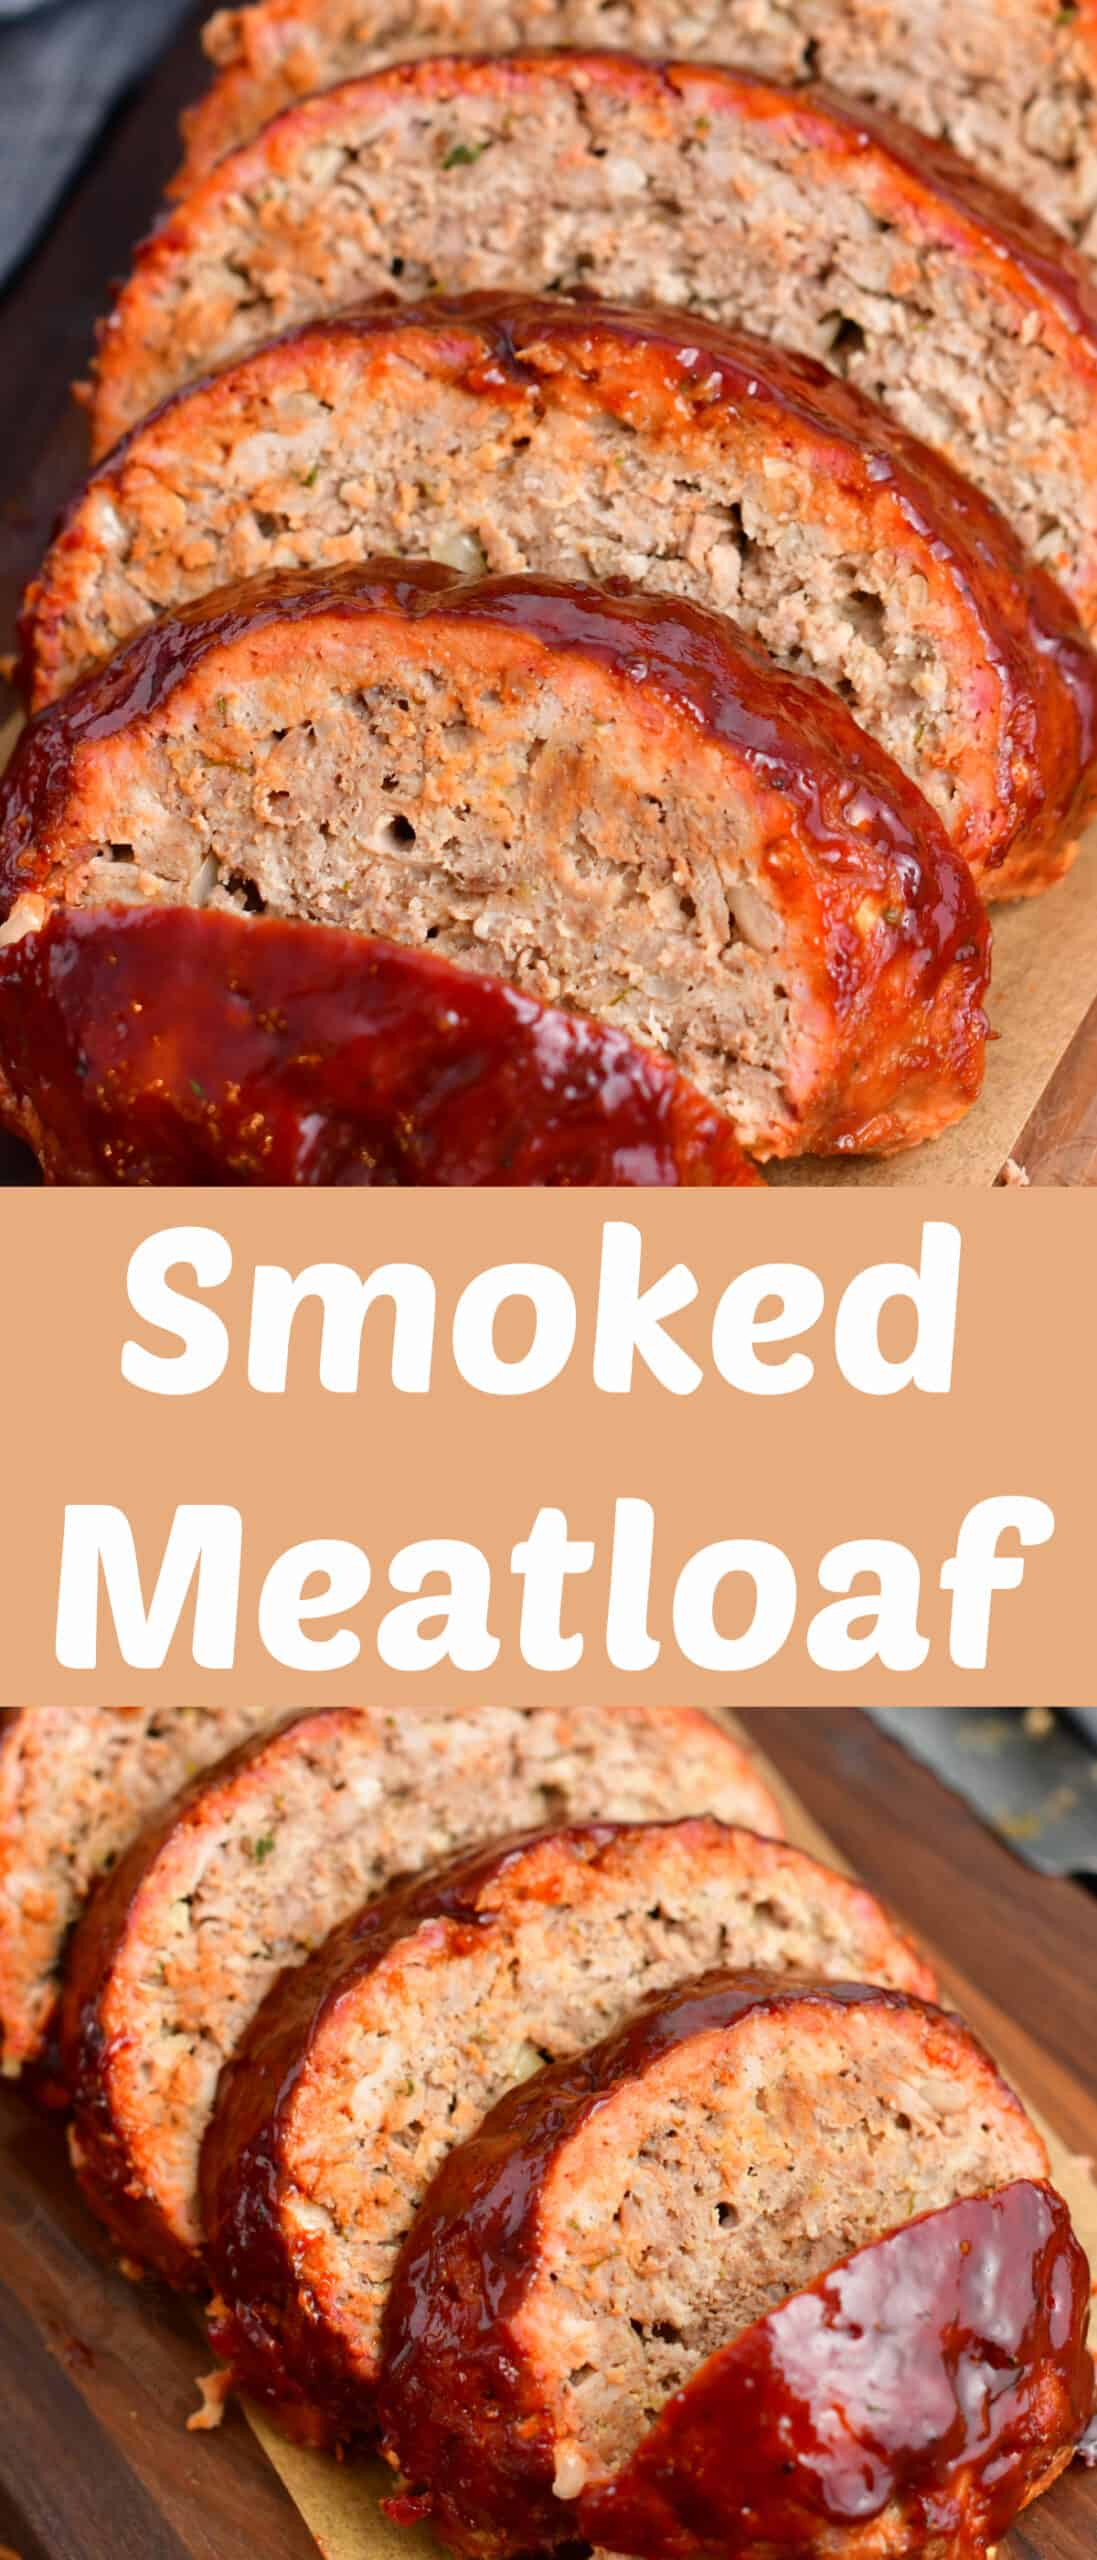 title collage image of sliced smoked meatloaf